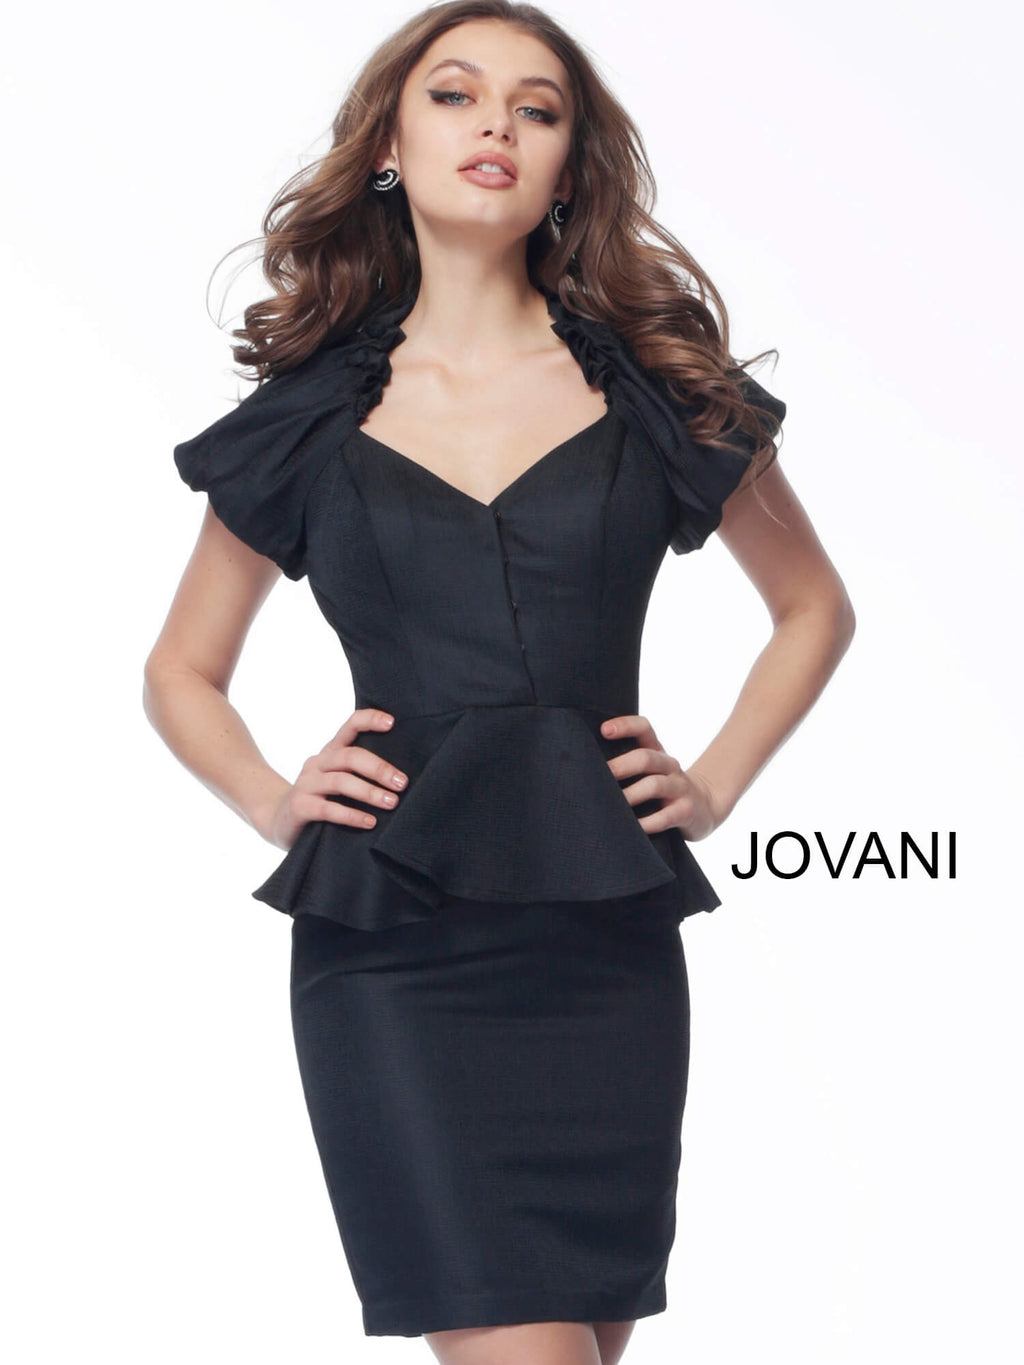 JOVANI 171598 Peplum V-Neck Cocktail Dress - CYC Boutique